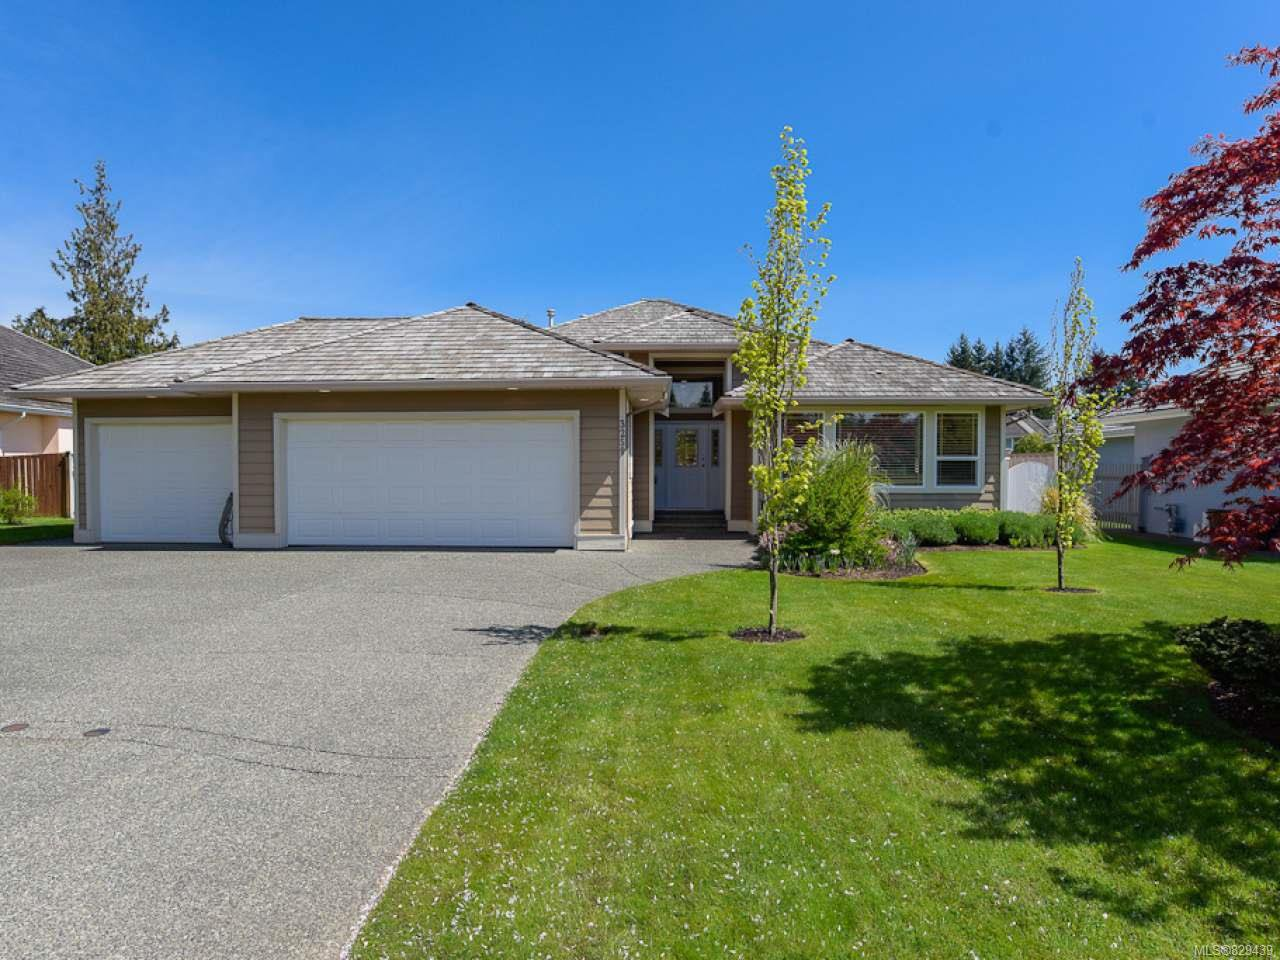 Main Photo: 3259 Majestic Dr in COURTENAY: CV Crown Isle House for sale (Comox Valley)  : MLS®# 829439